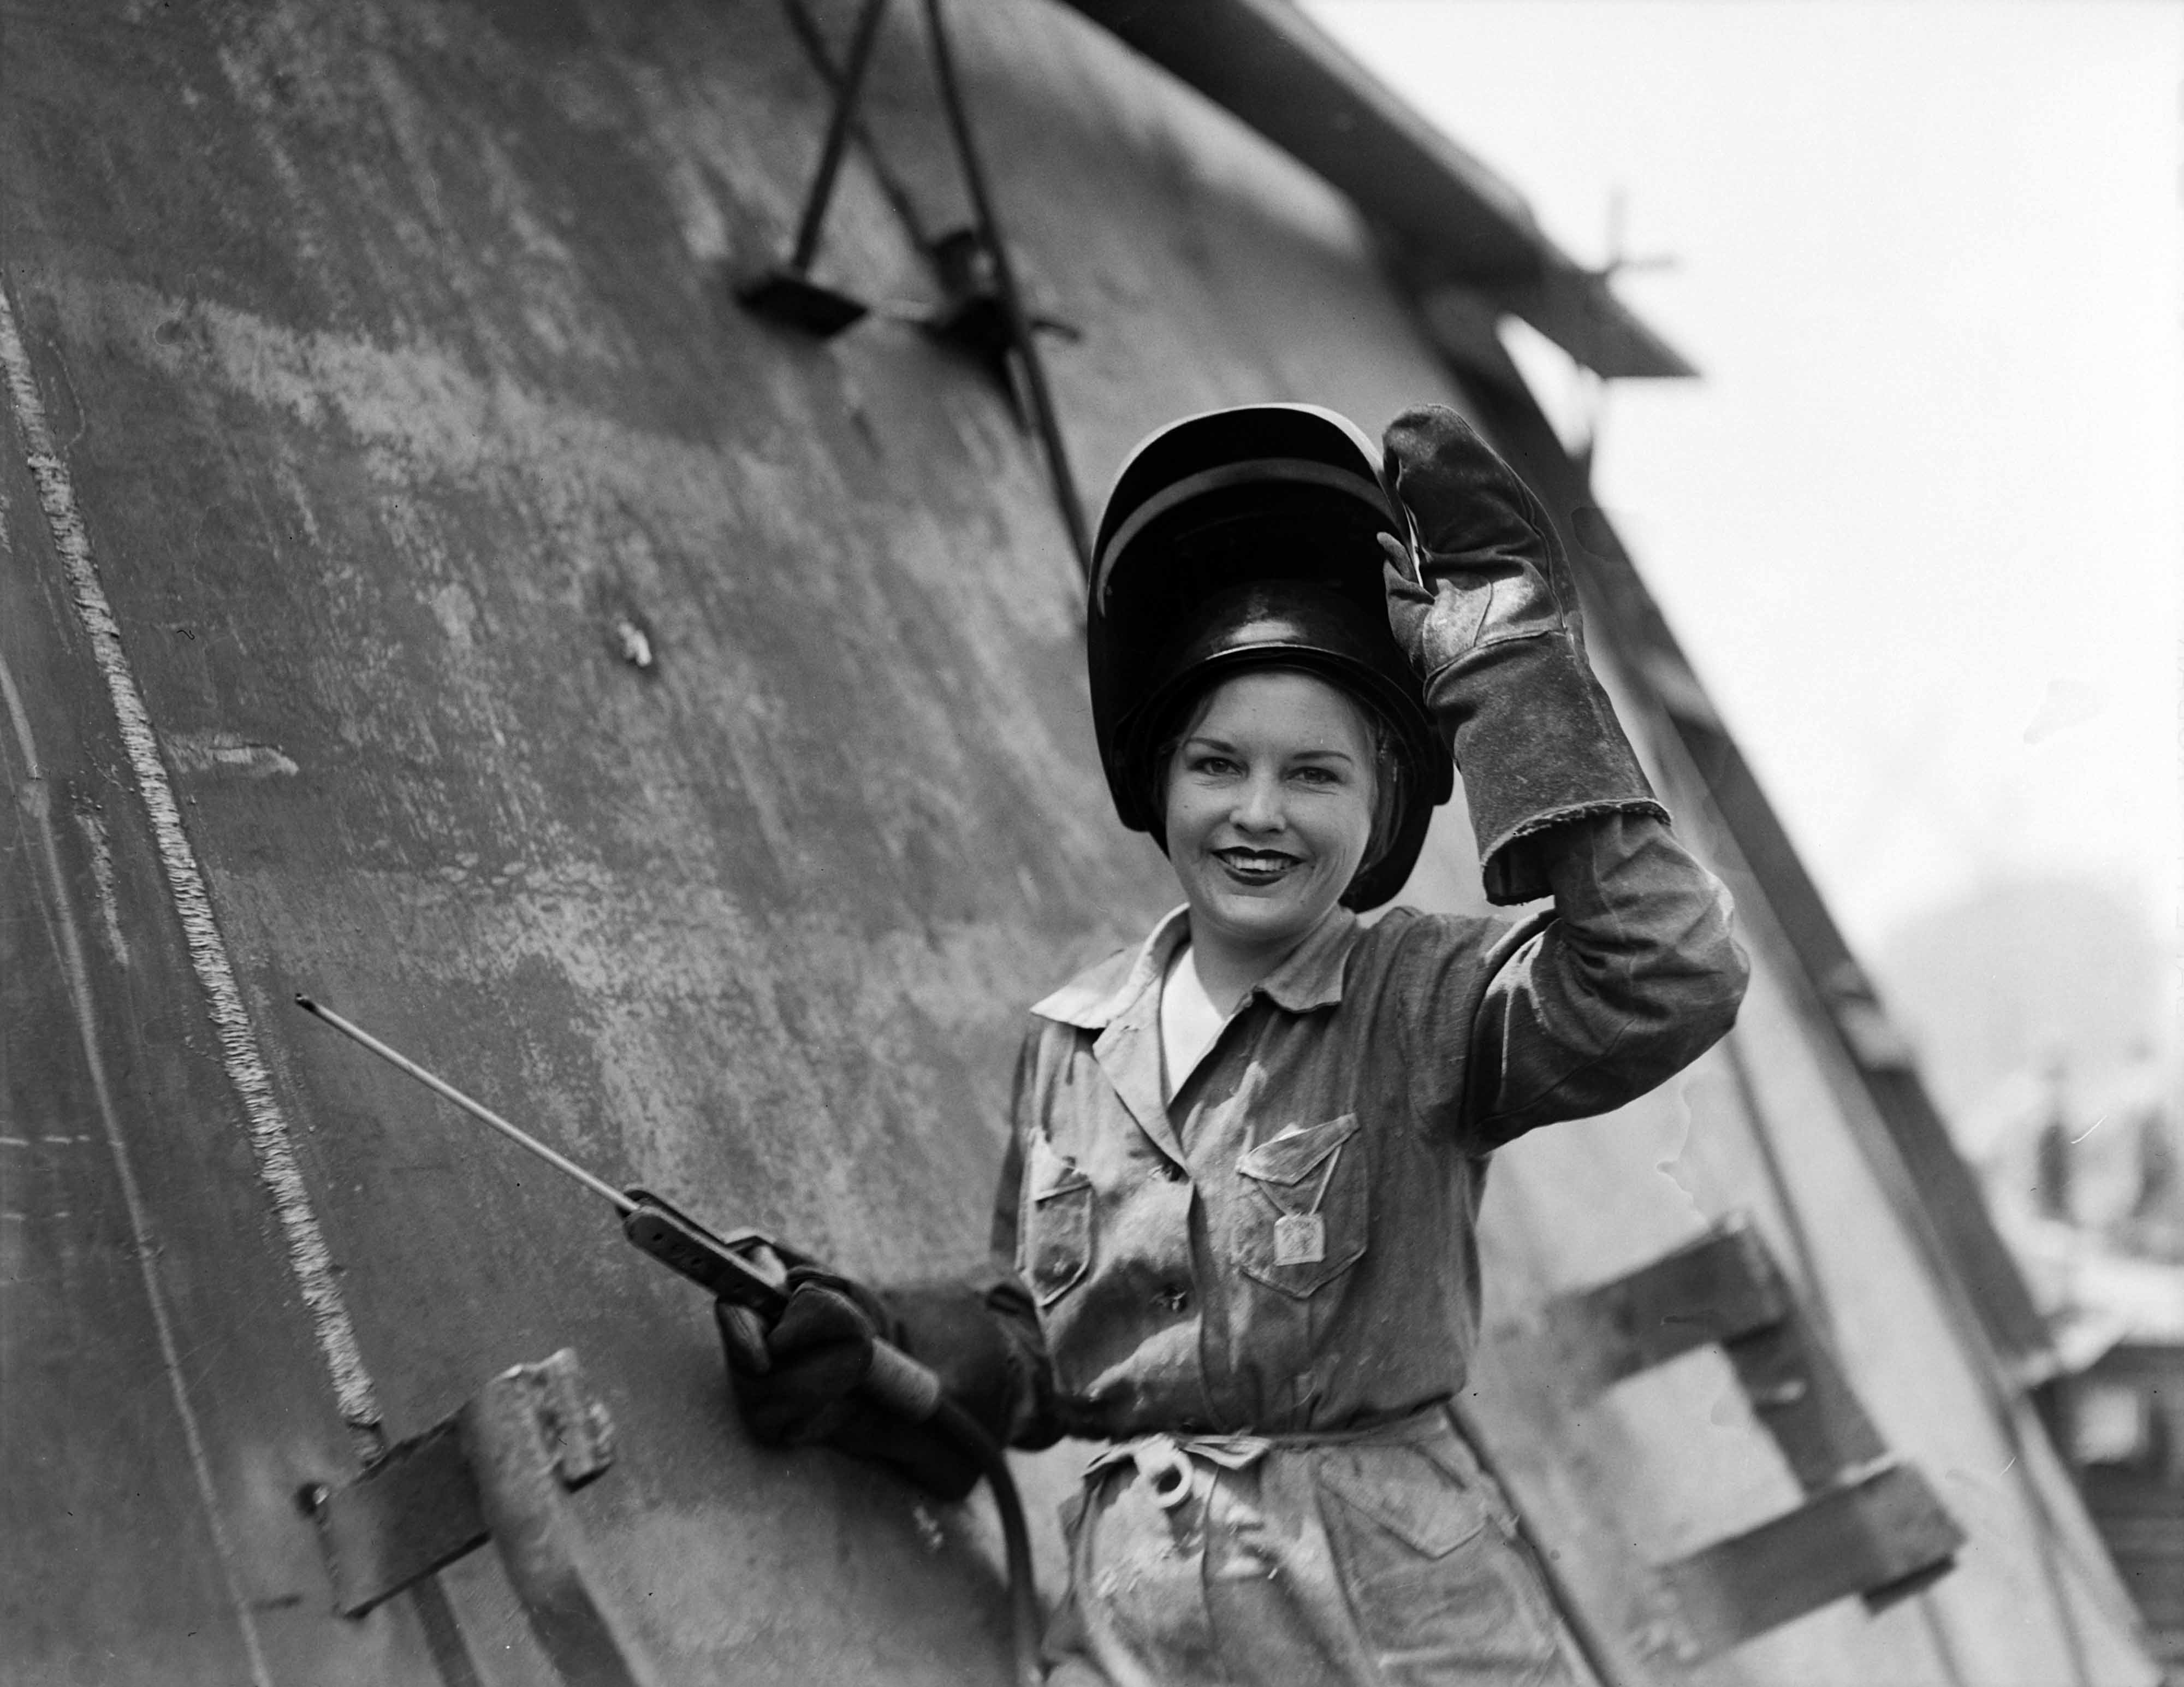 A Photograph Of A Woman Working In The Naval Shipyard In